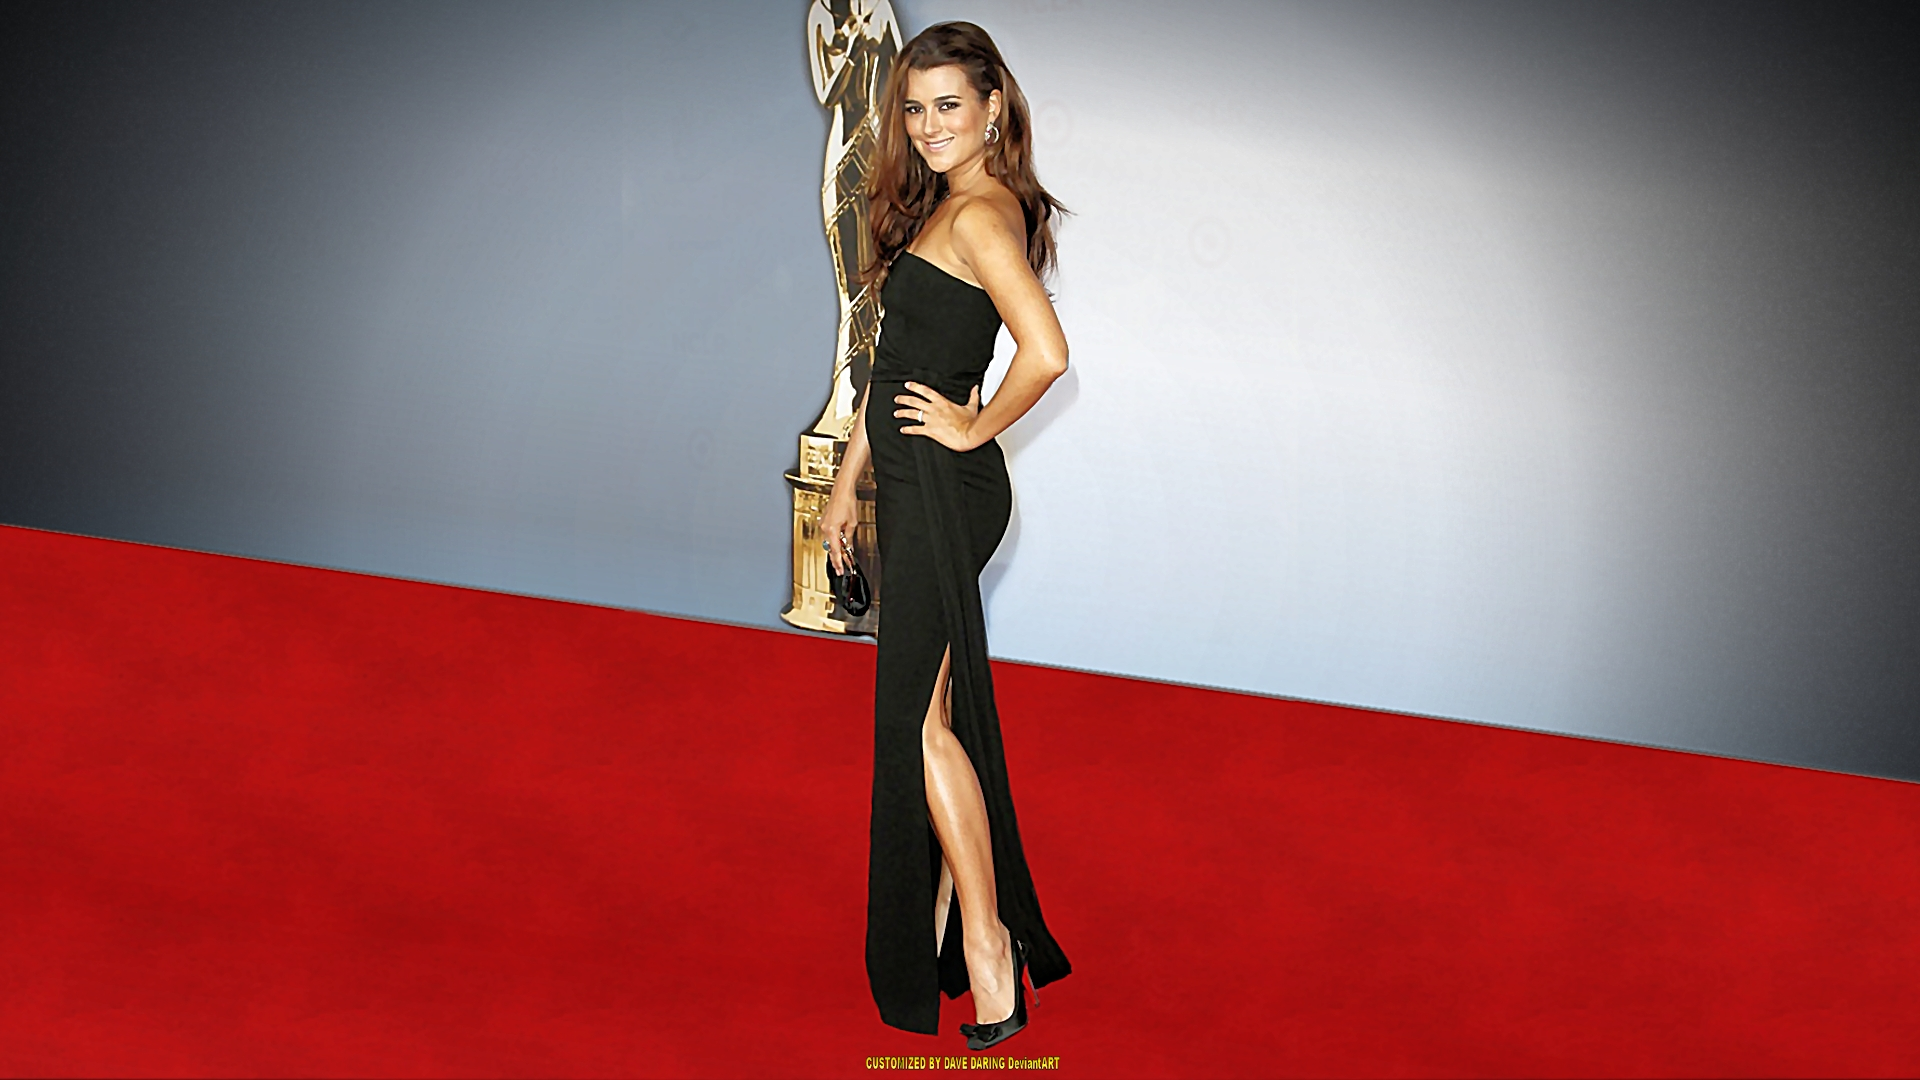 Cote De Pablo 10 Hot Wallpapers 08 Gotceleb